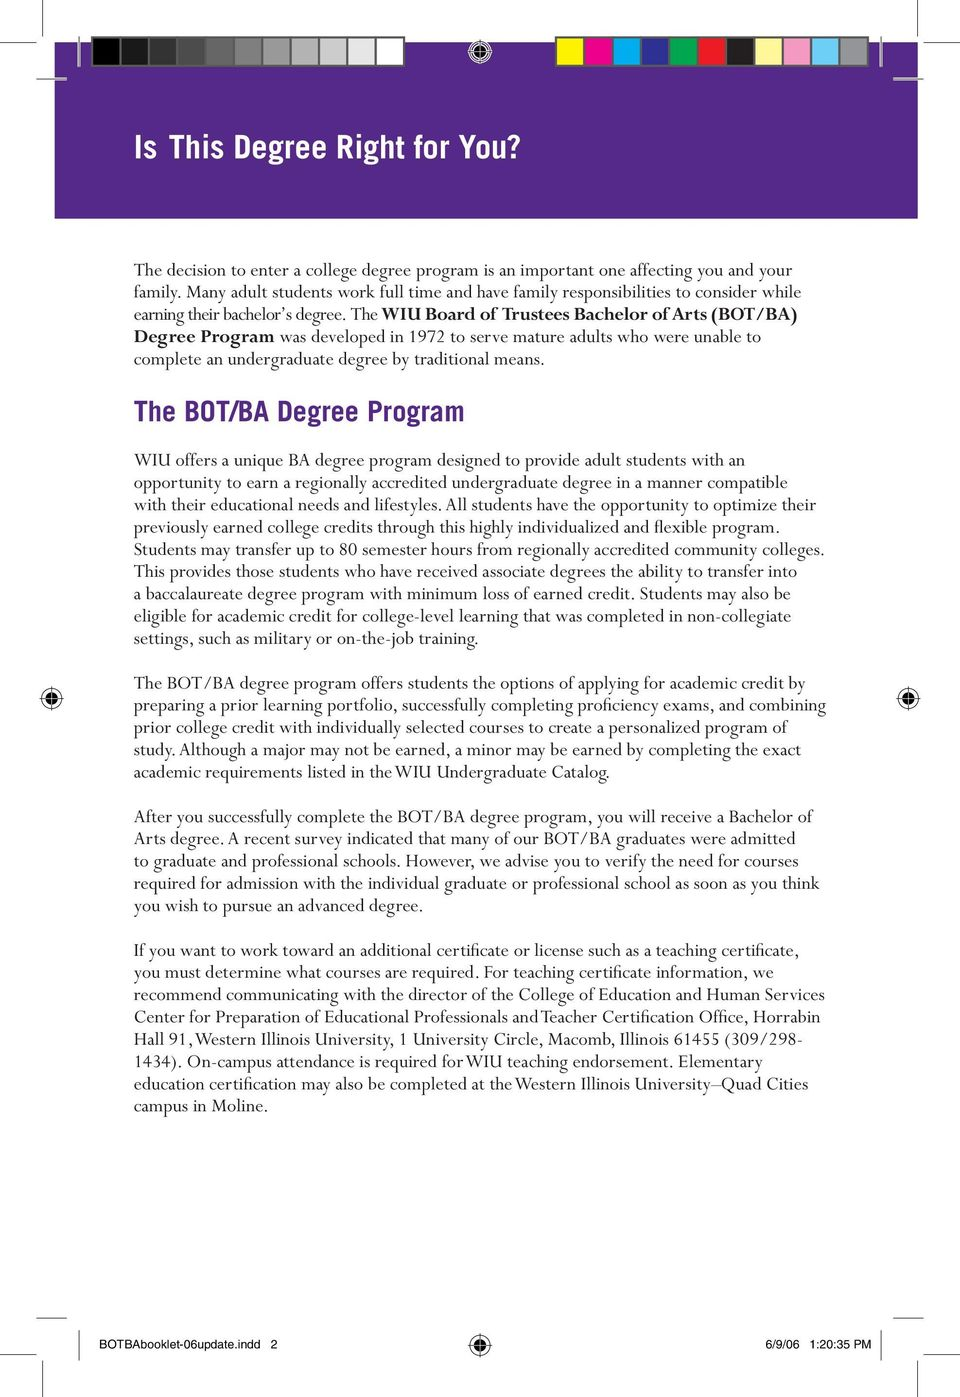 The WIU Board of Trustees Bachelor of Arts (BOT/BA) Degree Program was developed in 1972 to serve mature adults who were unable to complete an undergraduate degree by traditional means.